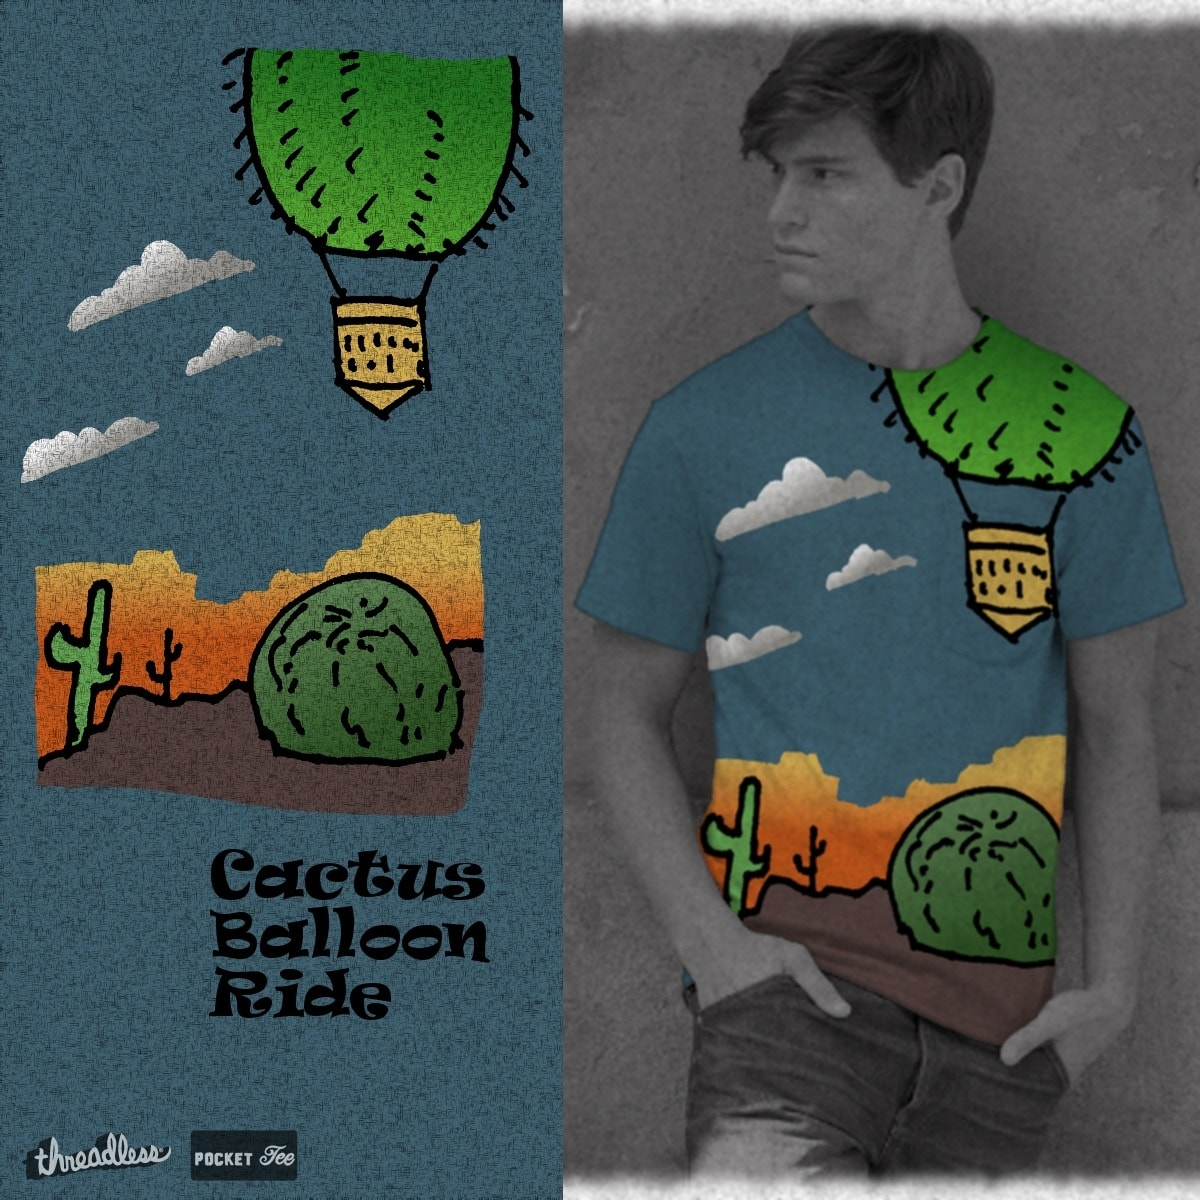 Cactus Balloon Ride by madmade on Threadless